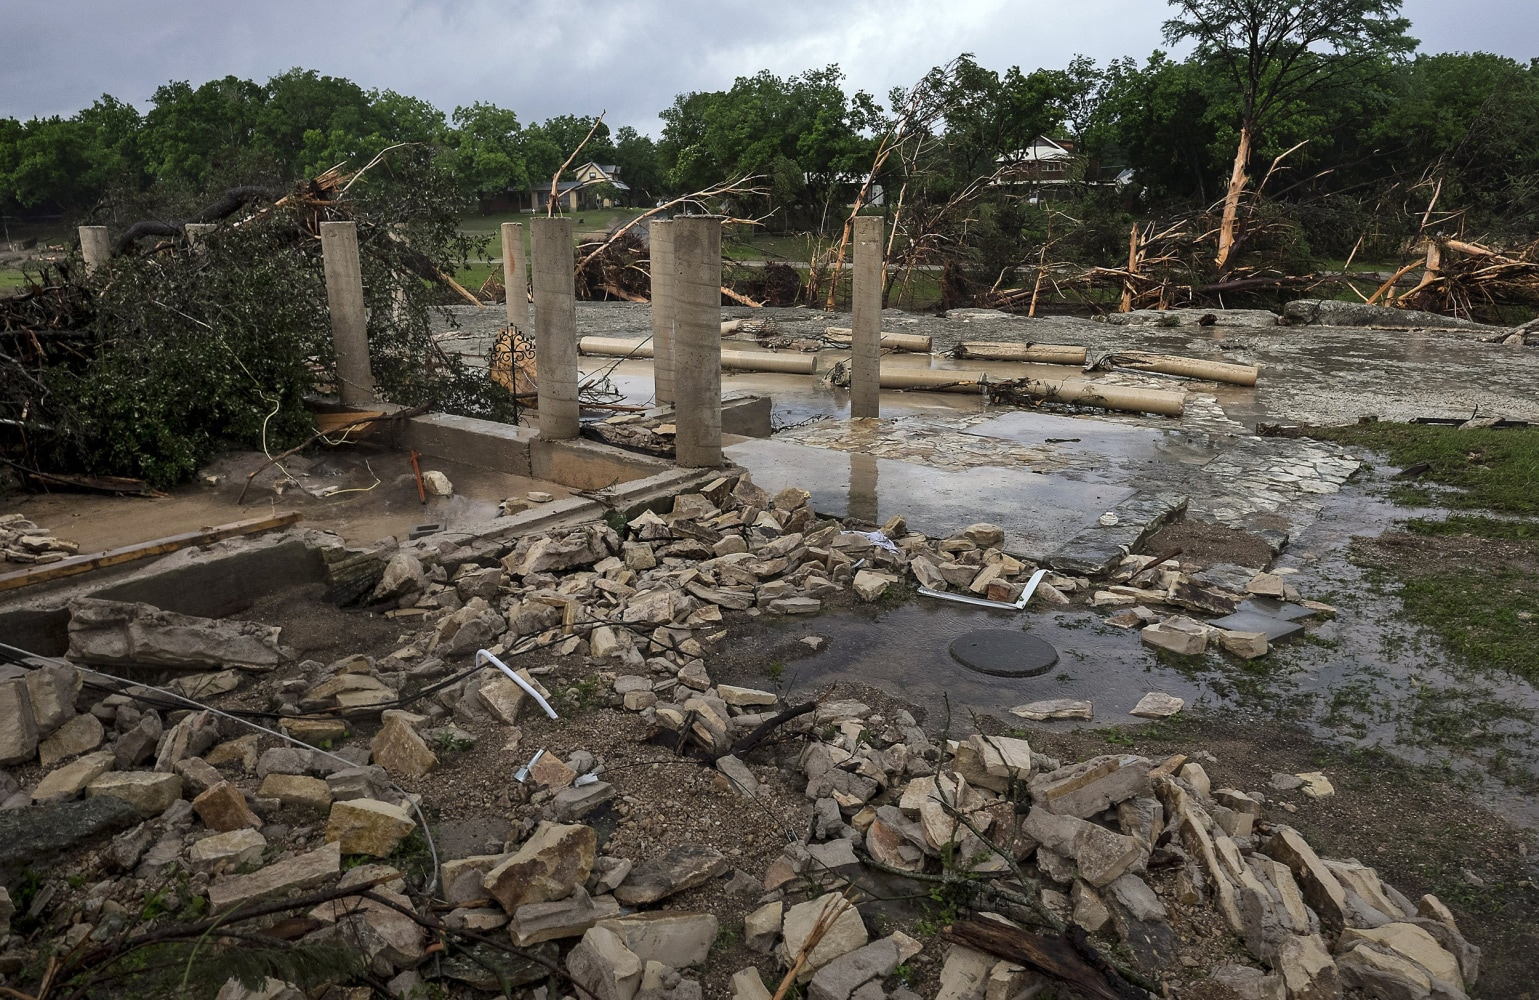 texas floods eight people in wimberley vacation house are missing image the cement stilts of the home belonging to the carey family of corpus christi